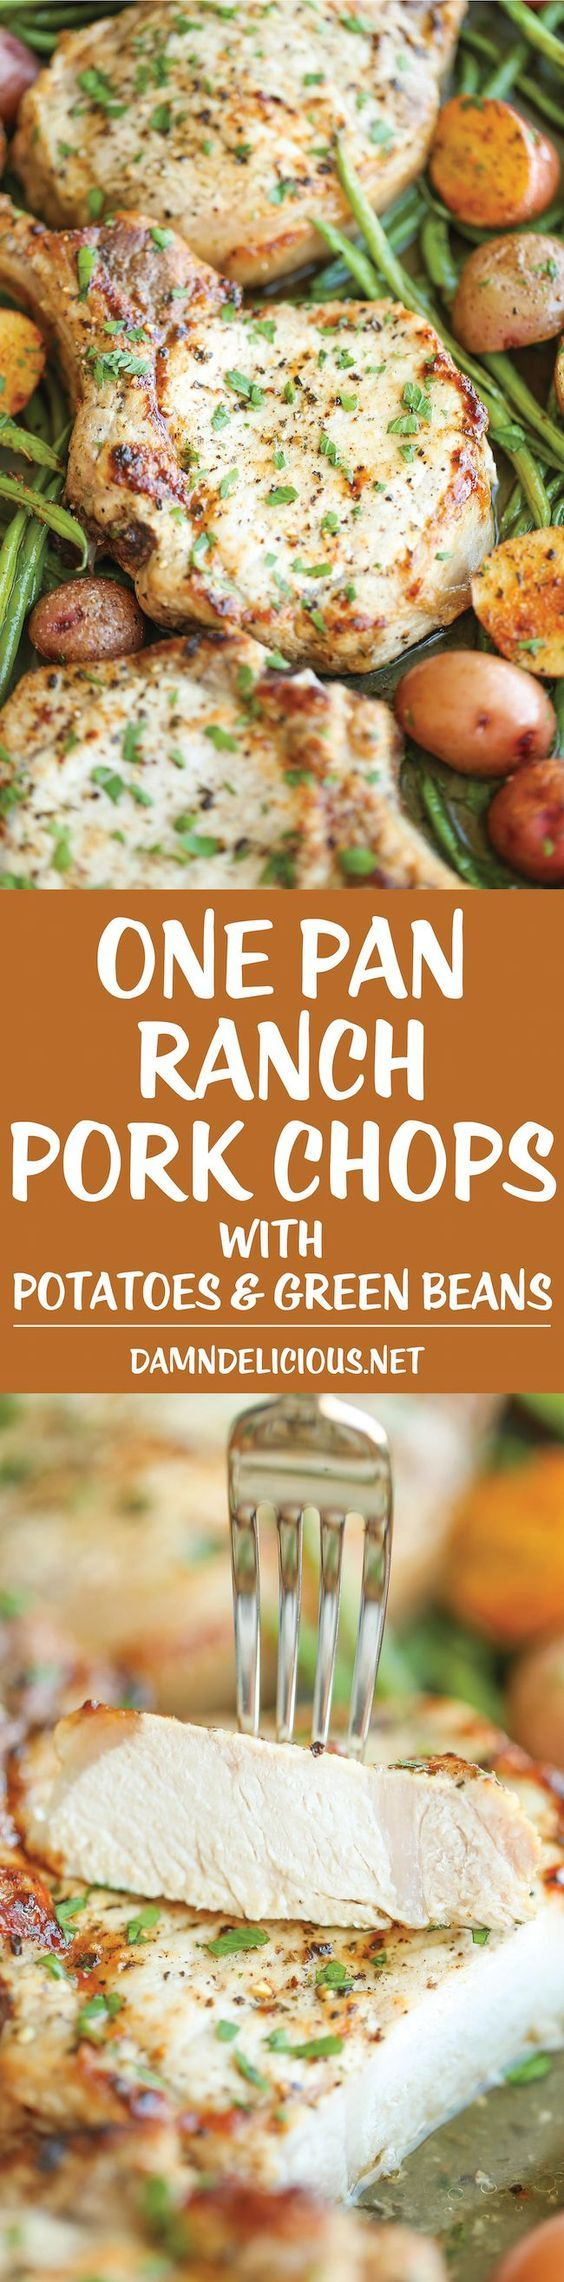 One Pan Ranch Pork Chops and Veggies - The easiest 5-ingredient meal EVER! Just one pan and 5 minutes of prep. A quick, easy and effortless meal!